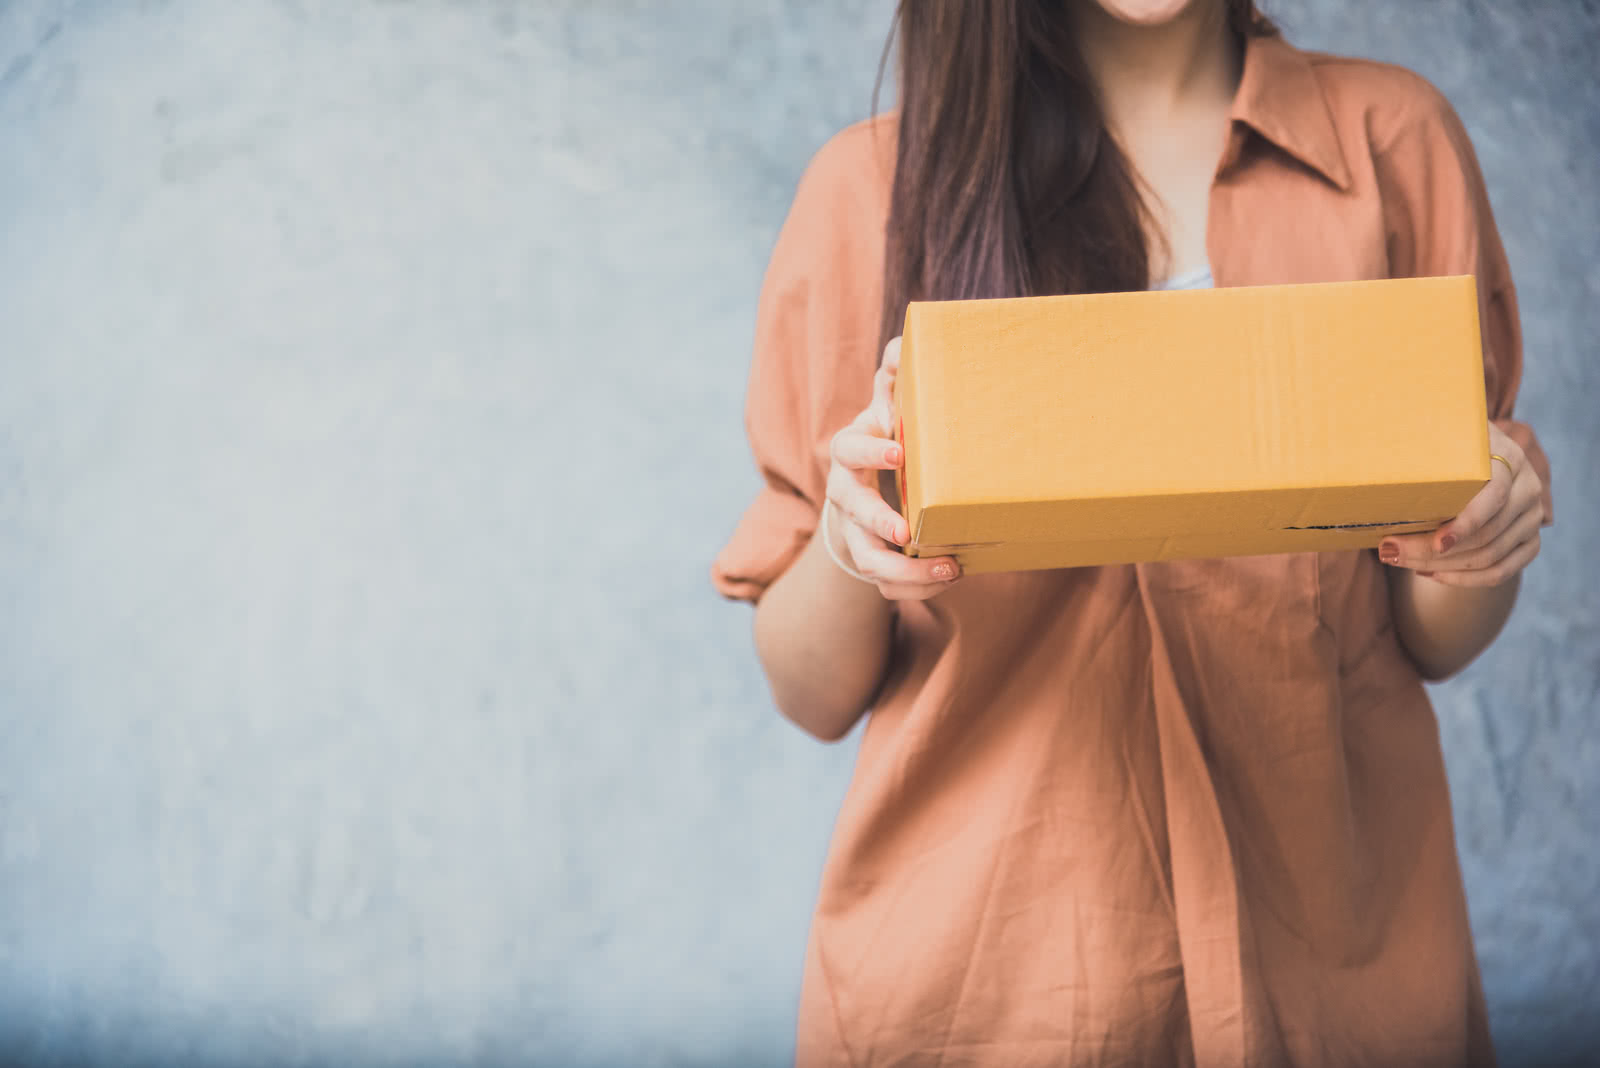 Woman holds a package for customer delivery